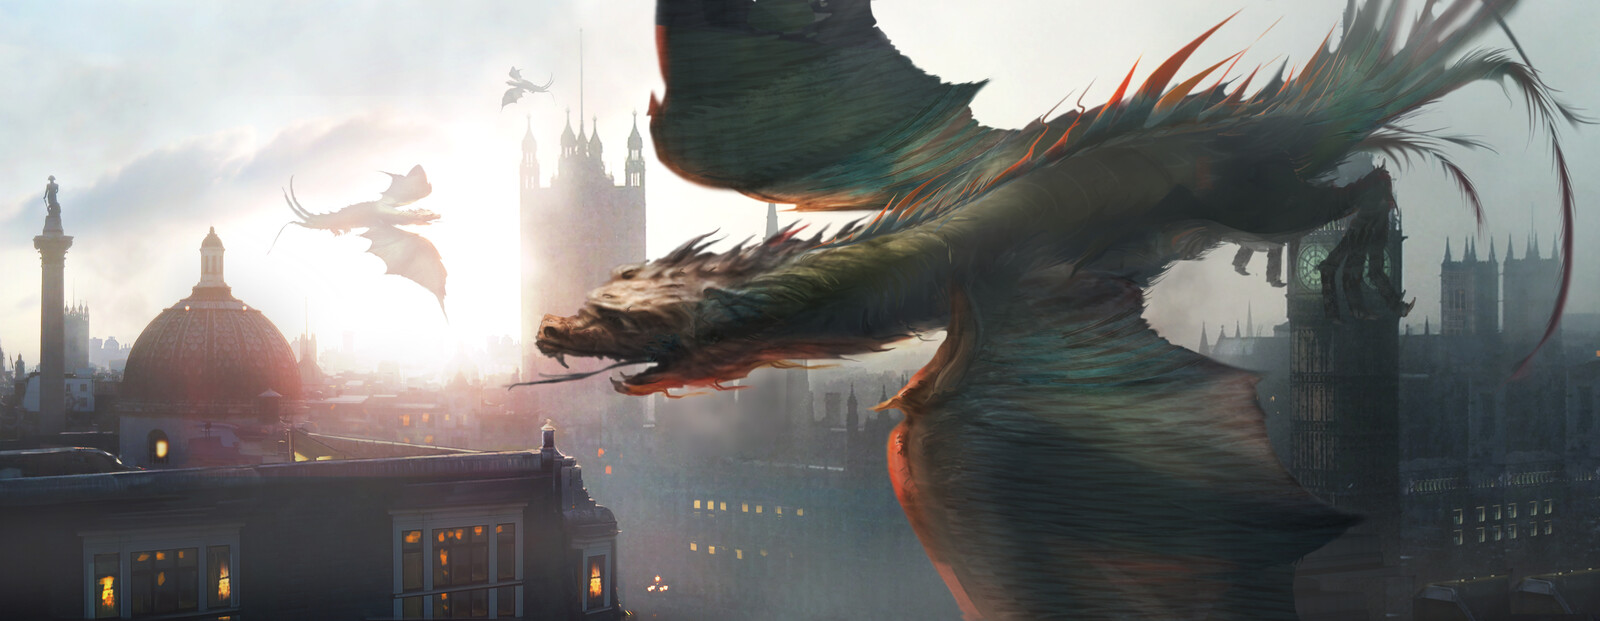 creature over london concept